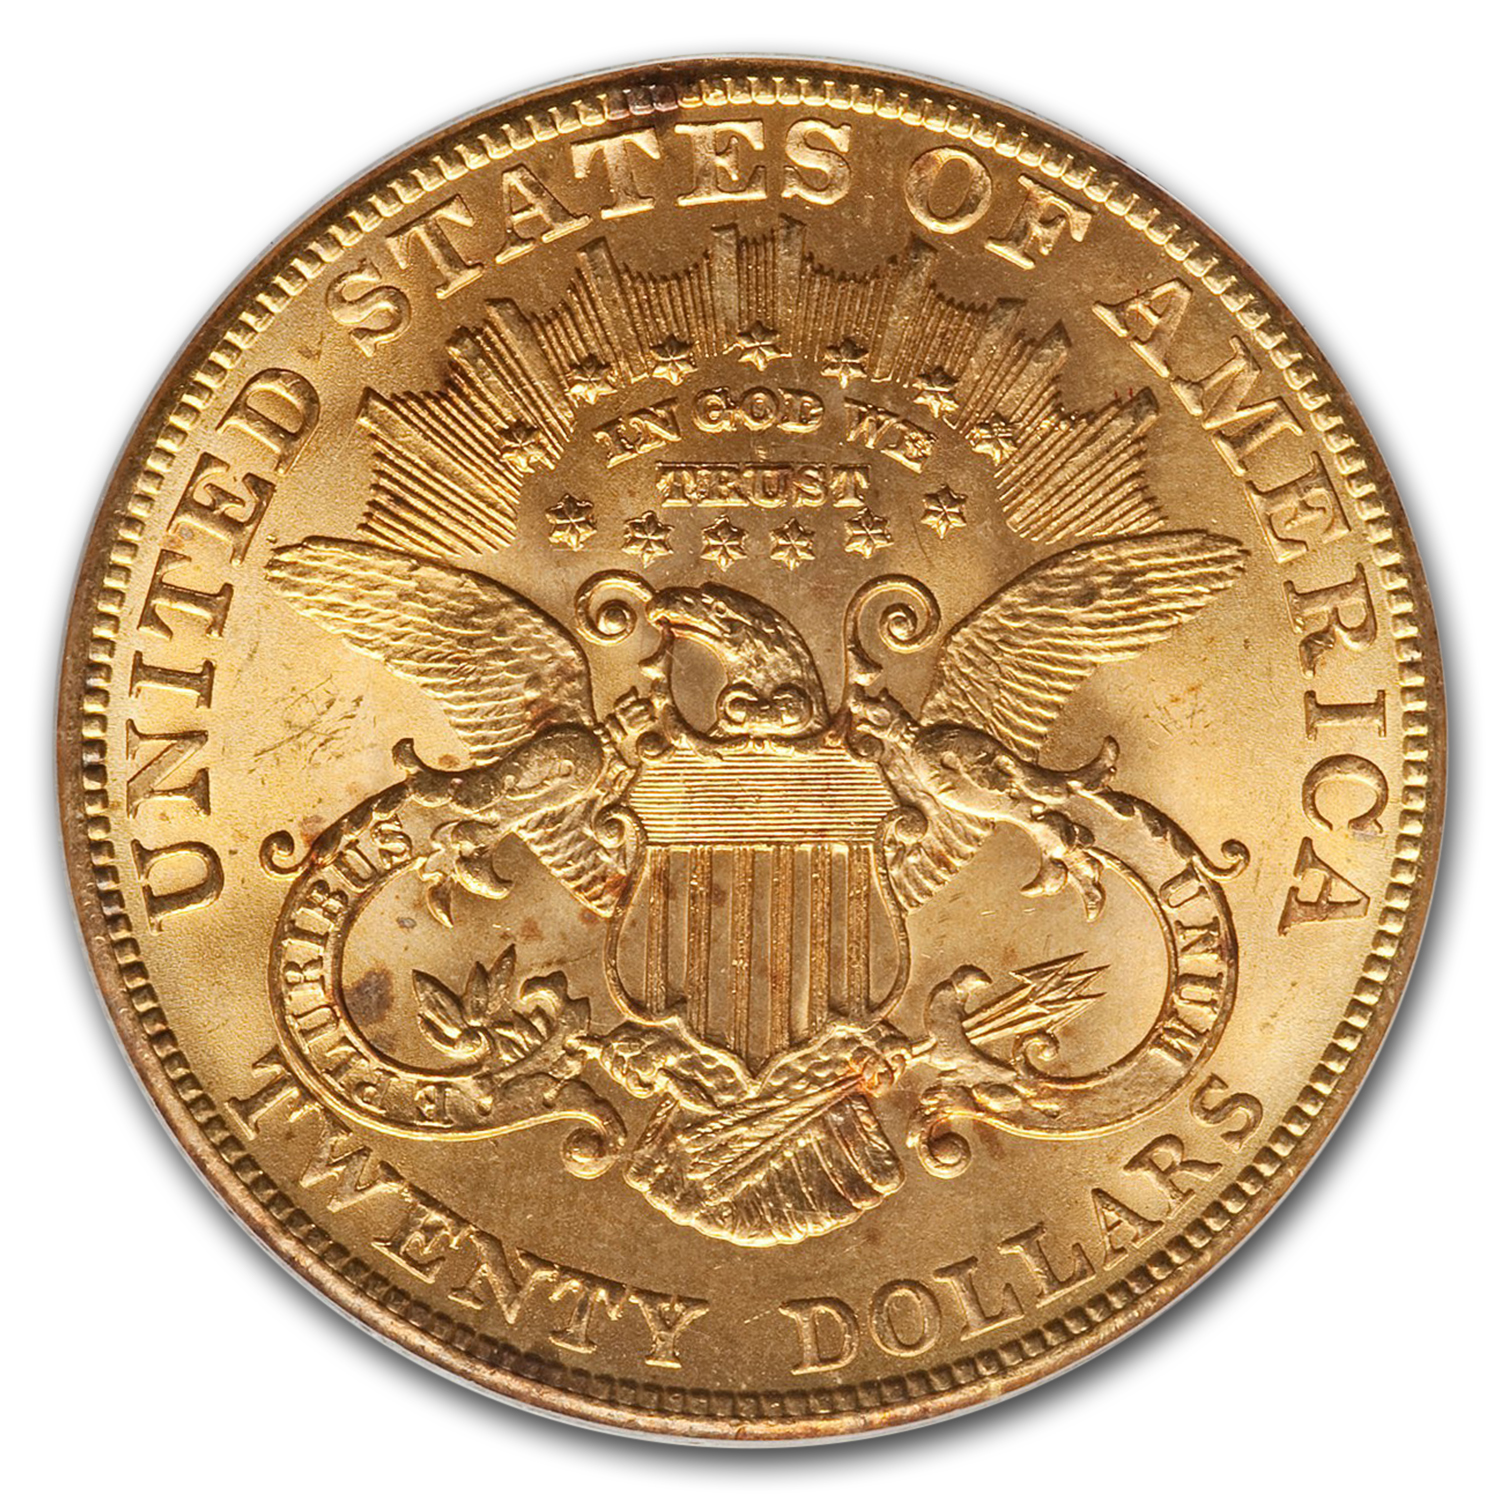 1903 $20 Gold Liberty Double Eagle - MS-65 PCGS